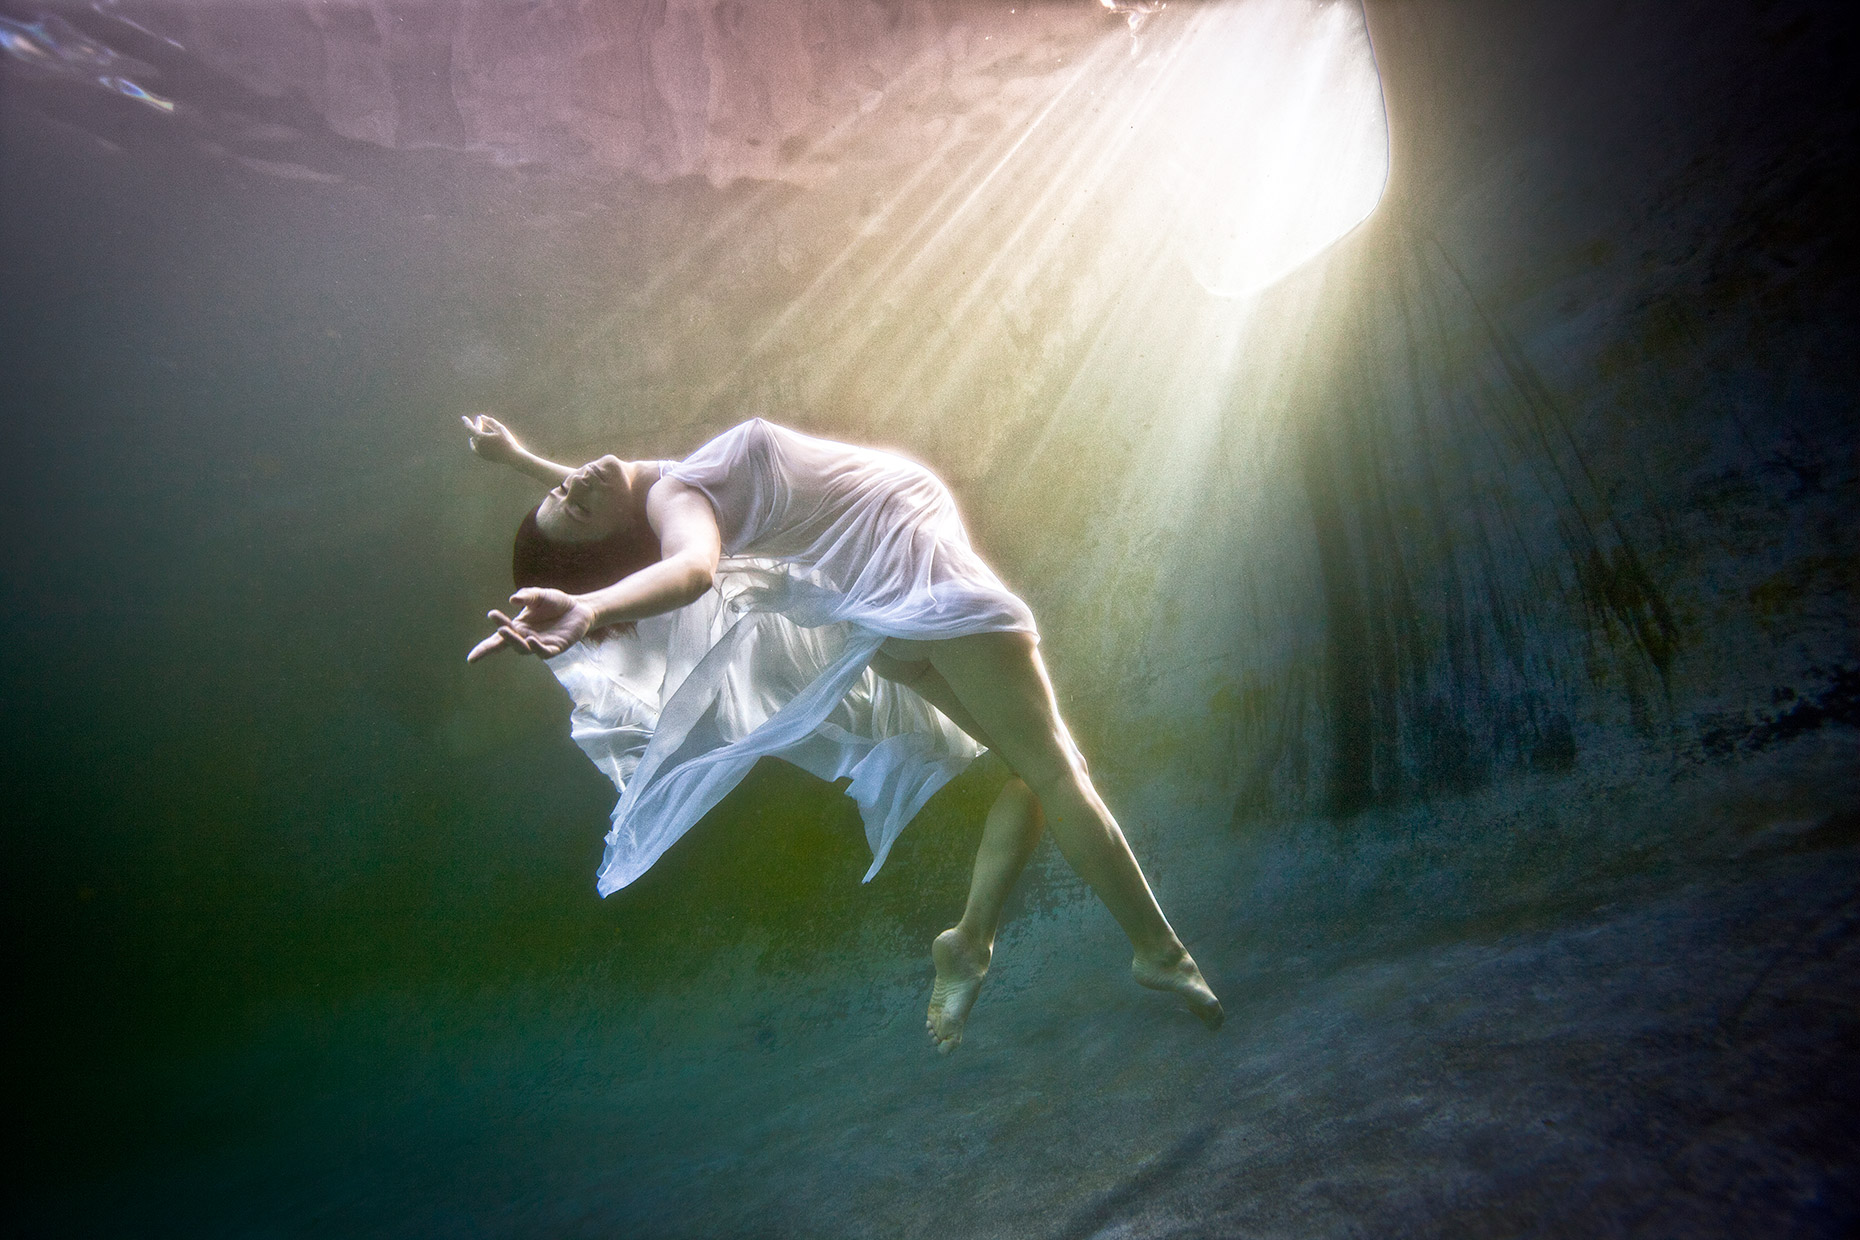 underwater floating pregnant woman in an enchanted pool